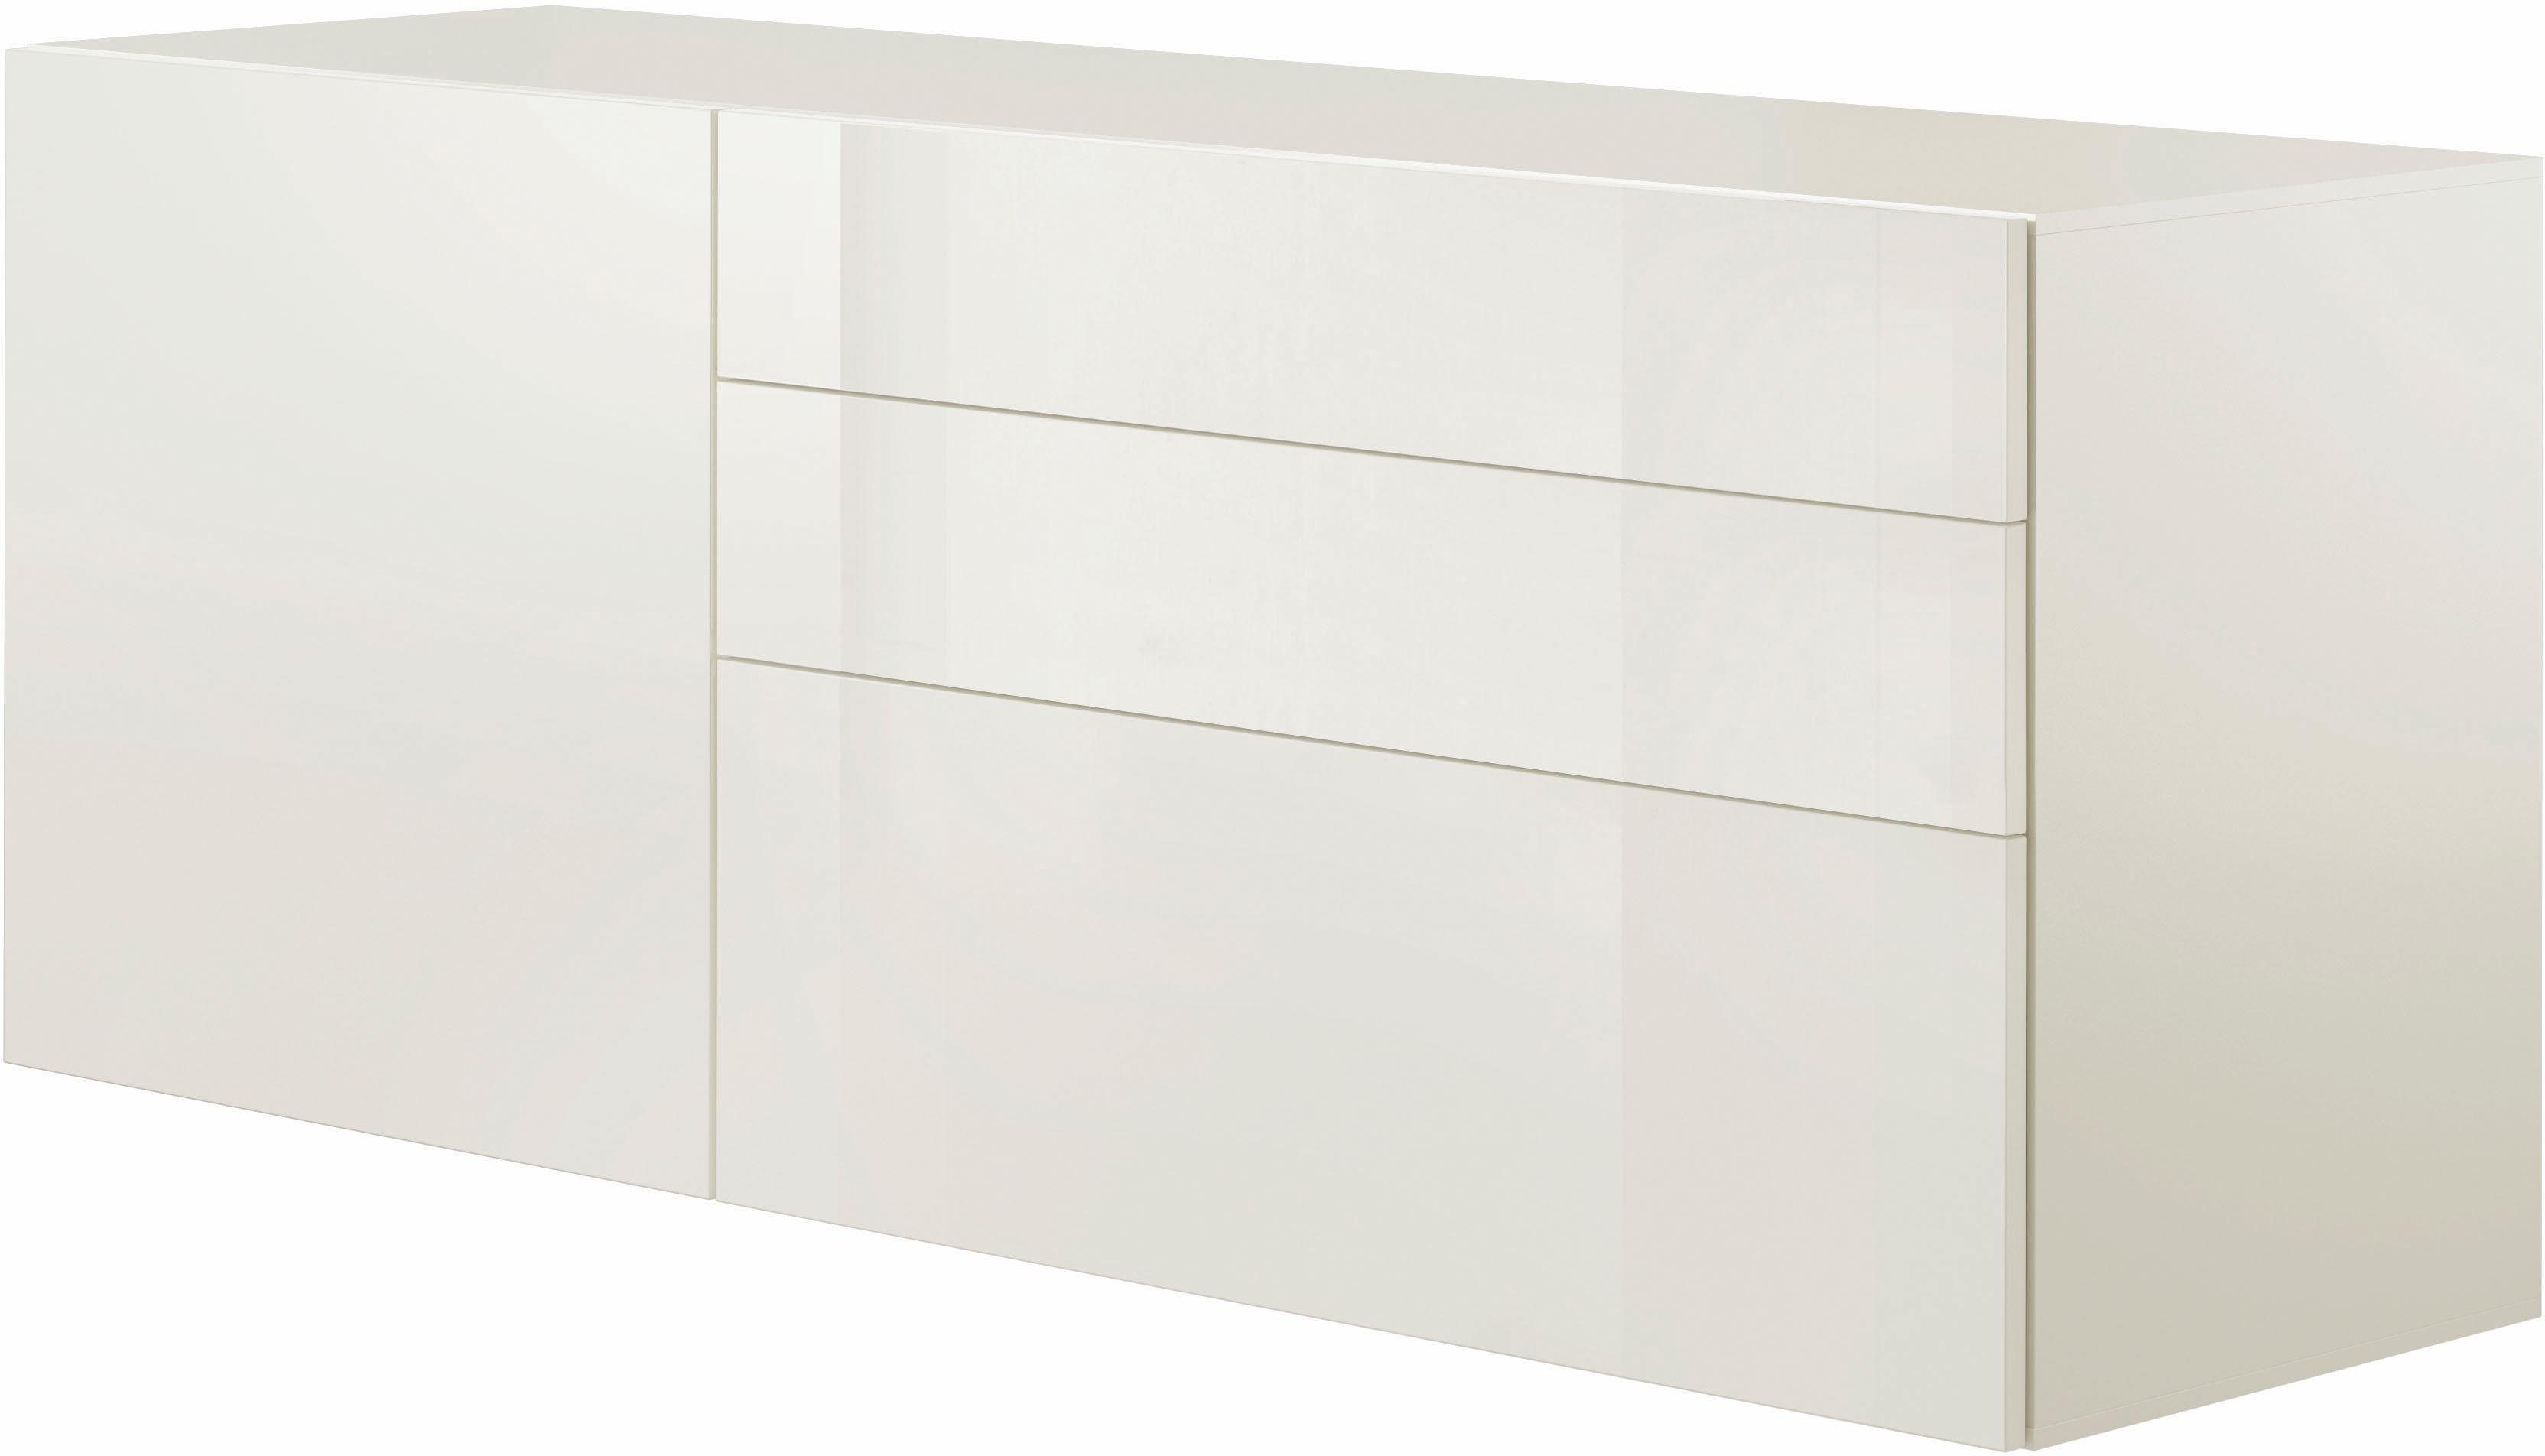 now! by hülsta Sideboard »now! vision«, Breite 176 cm